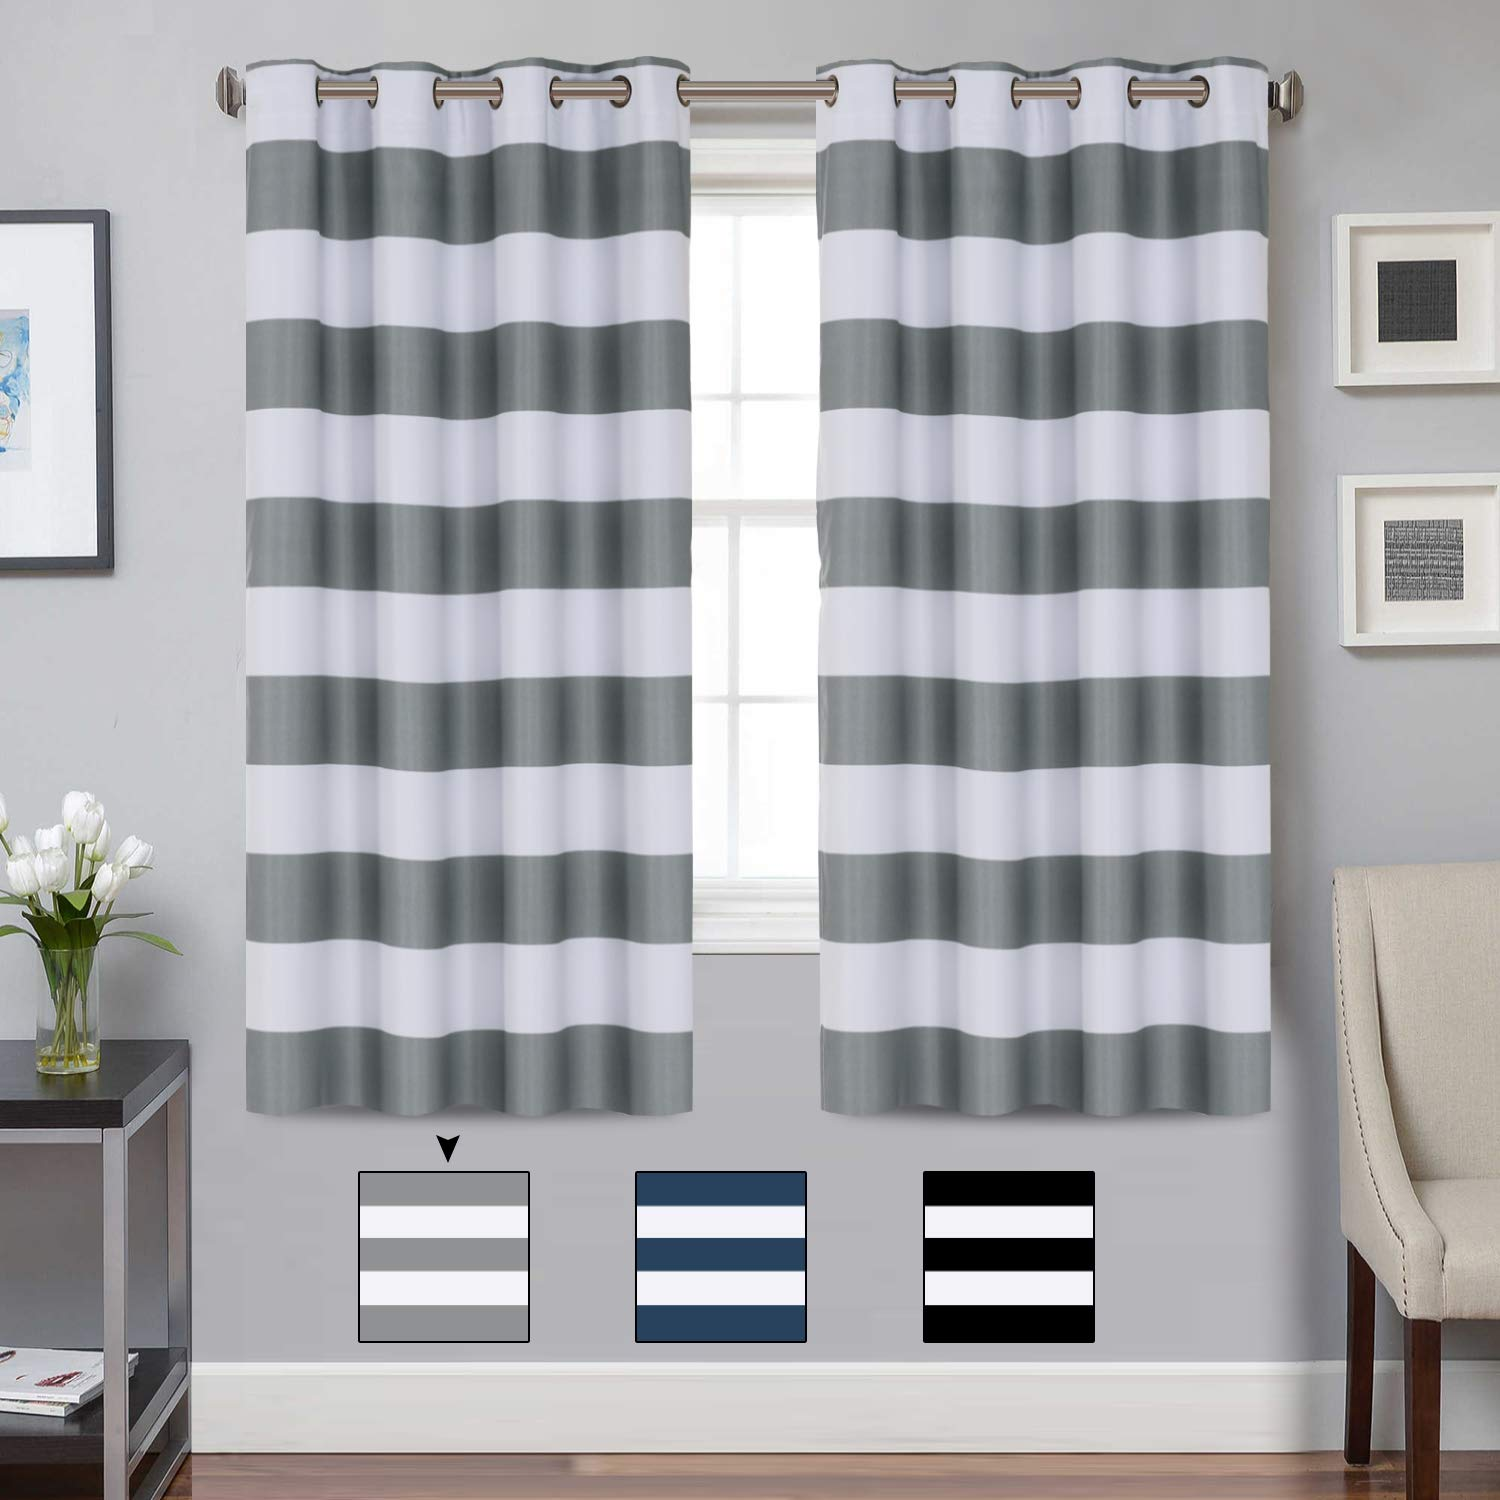 Turquoize Blackout Striped Curtains Panels for Bedroom Noise Reducing Thermal Insulated Solid Ring Top Blackout Window Drapes (Two Panels, 52 x 63 Inch, Grey and White Striped) by Turquoize